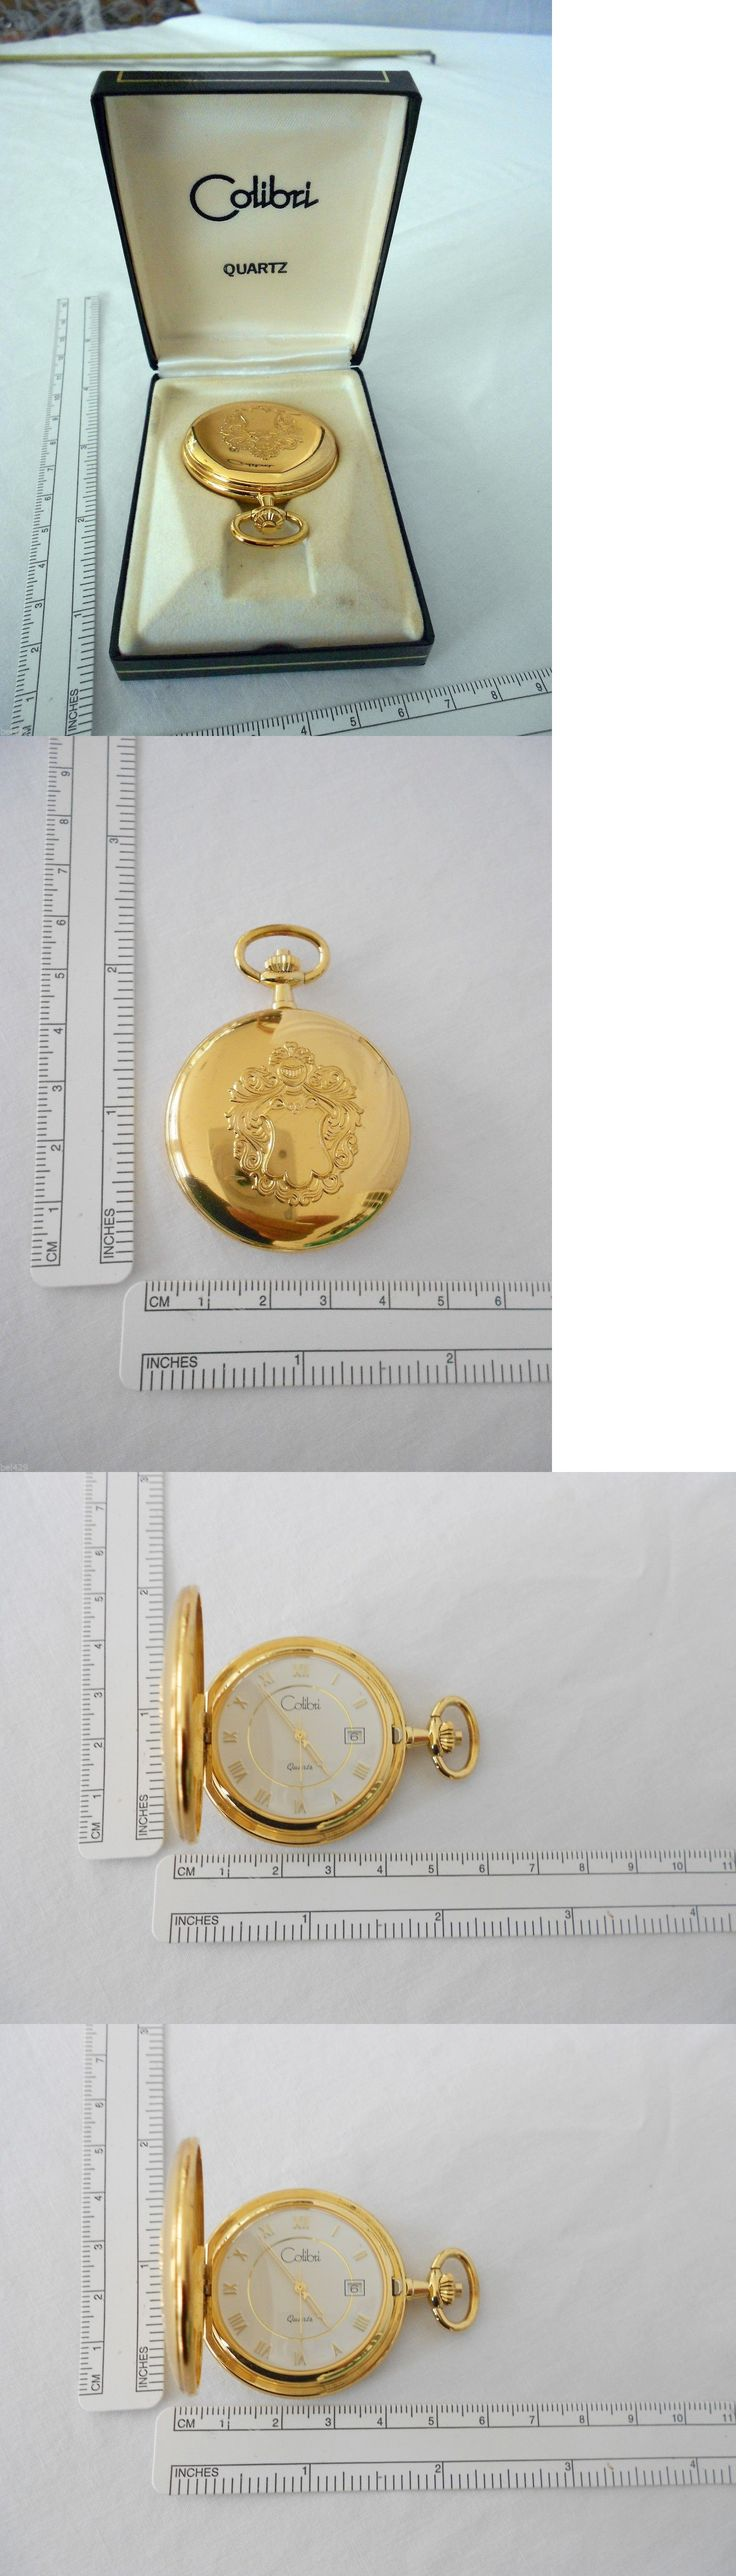 Other Pocket Watches 398: Colibri Pocket Watch Nib New Battery Gold Tone Hunter Case -> BUY IT NOW ONLY: $59.95 on eBay!